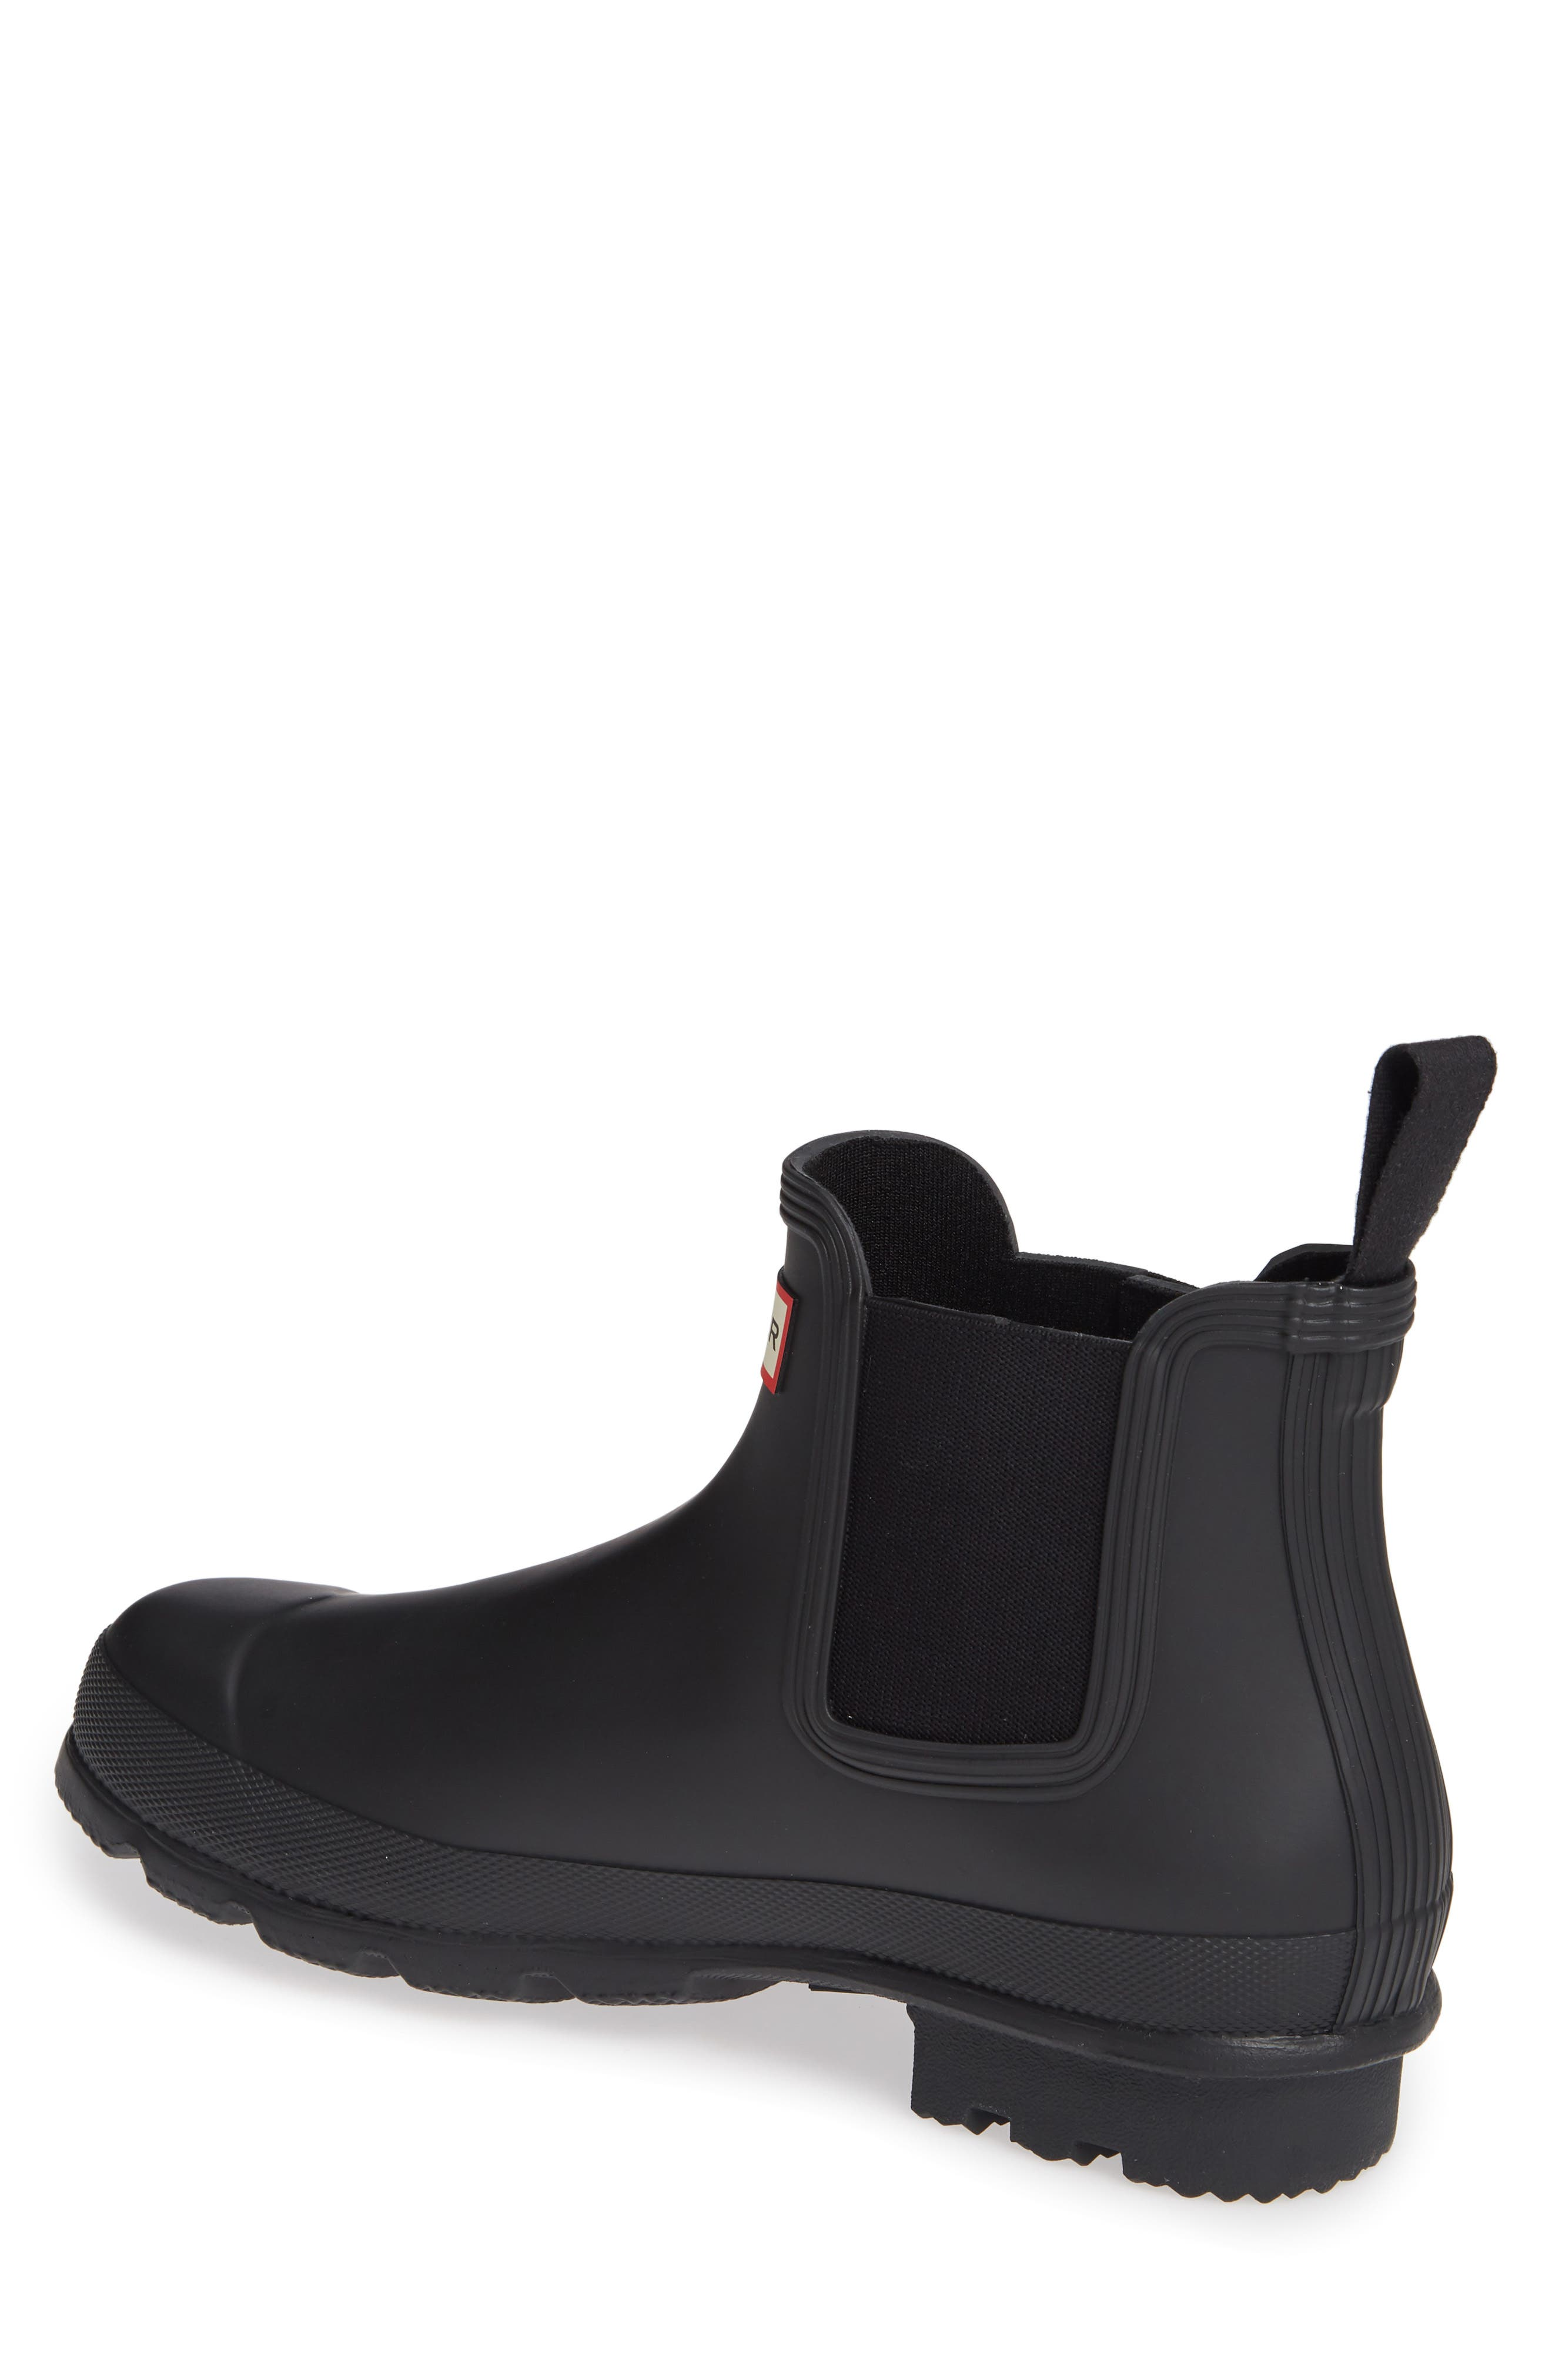 HUNTER,                             'Original' Waterproof Chelsea Rain Boot,                             Alternate thumbnail 2, color,                             002